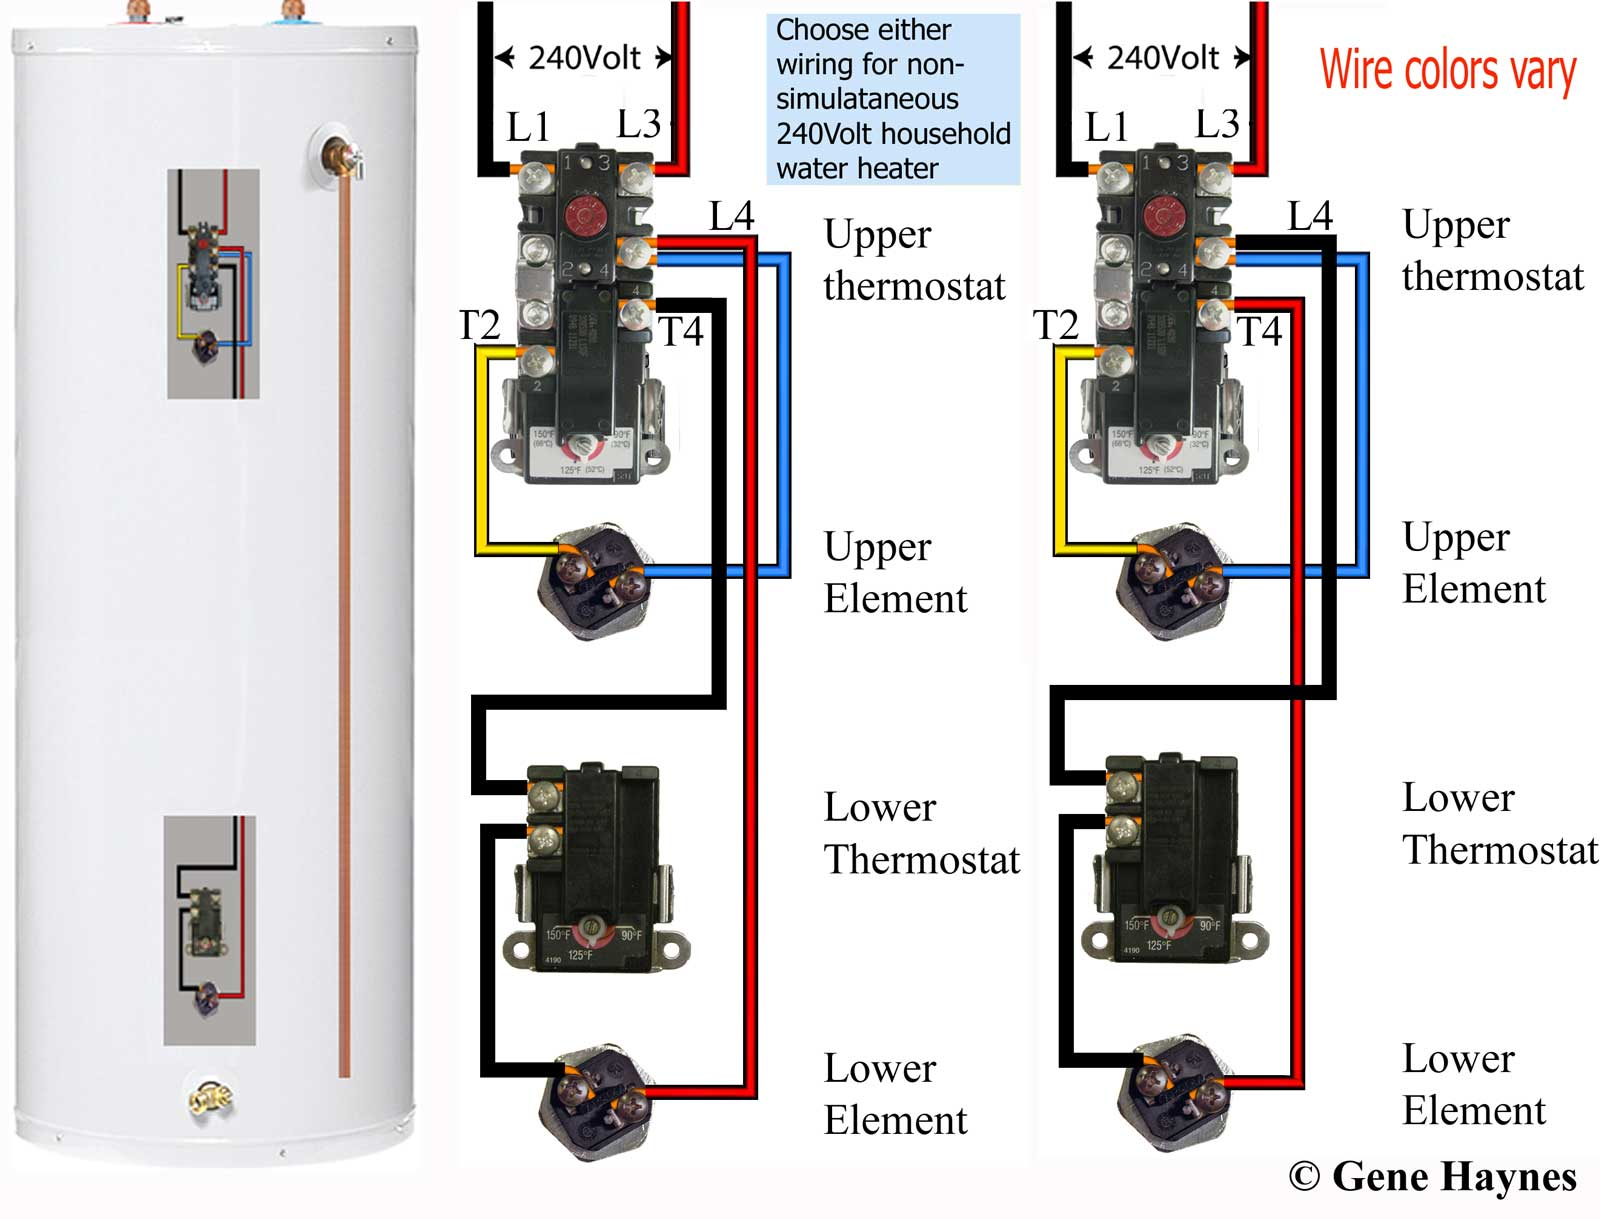 How To Troubleshoot Electric Water Heater Aluminum Wiring Troubleshooting Diagram Illustrated On Right Will Not Prevent Cracked Element It Only Mask Problem Of Lower And